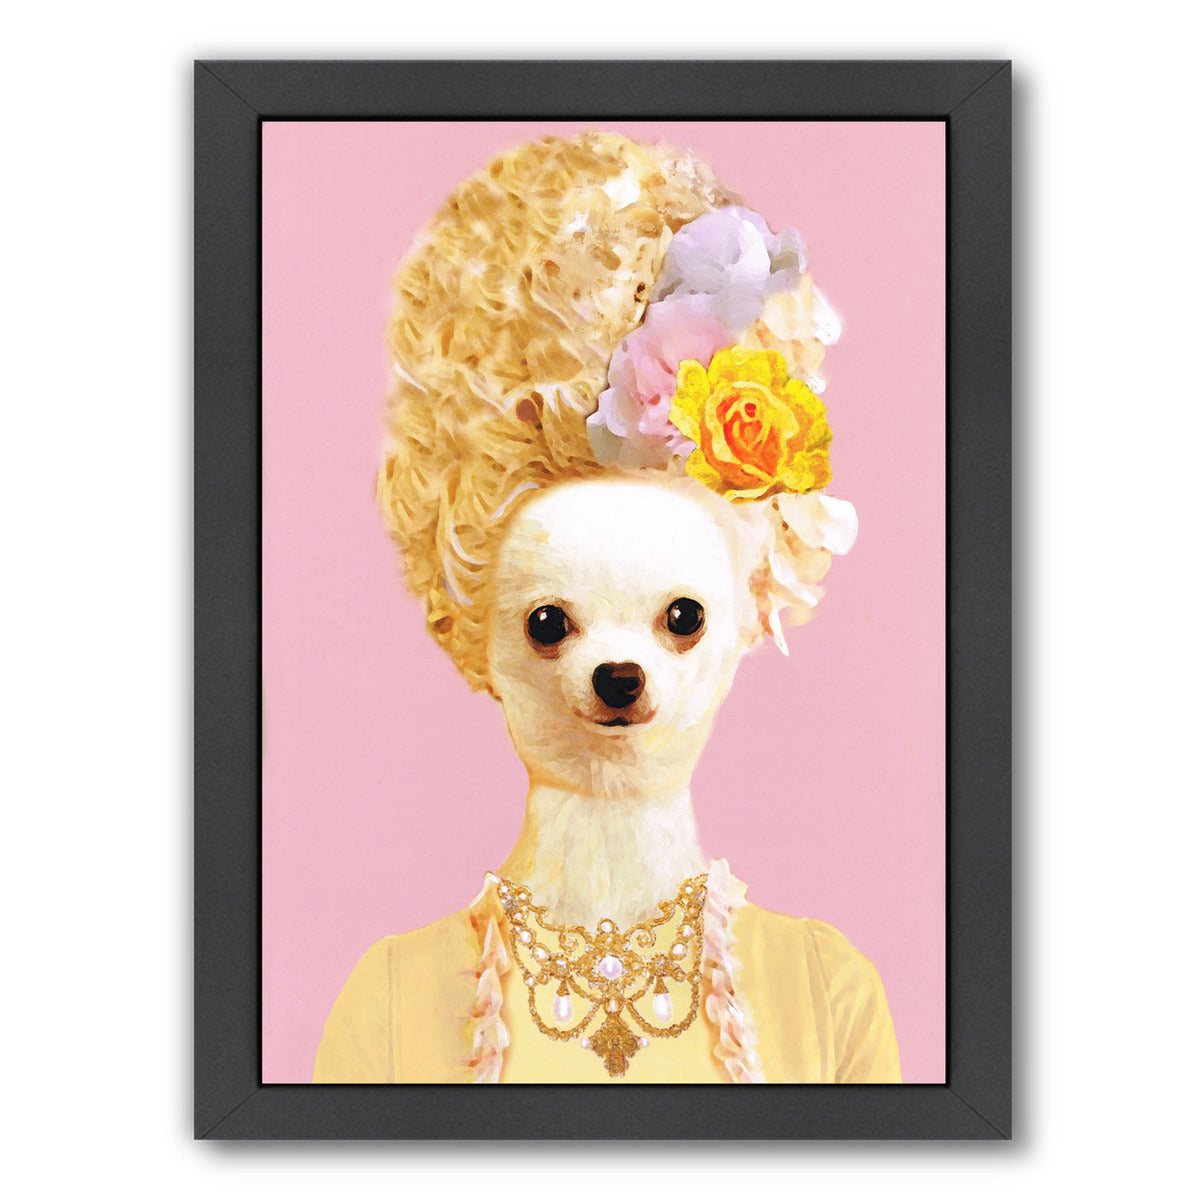 Marie Antoinette Chihuahua By Coco De Paris - Black Framed Print - Wall Art - Americanflat